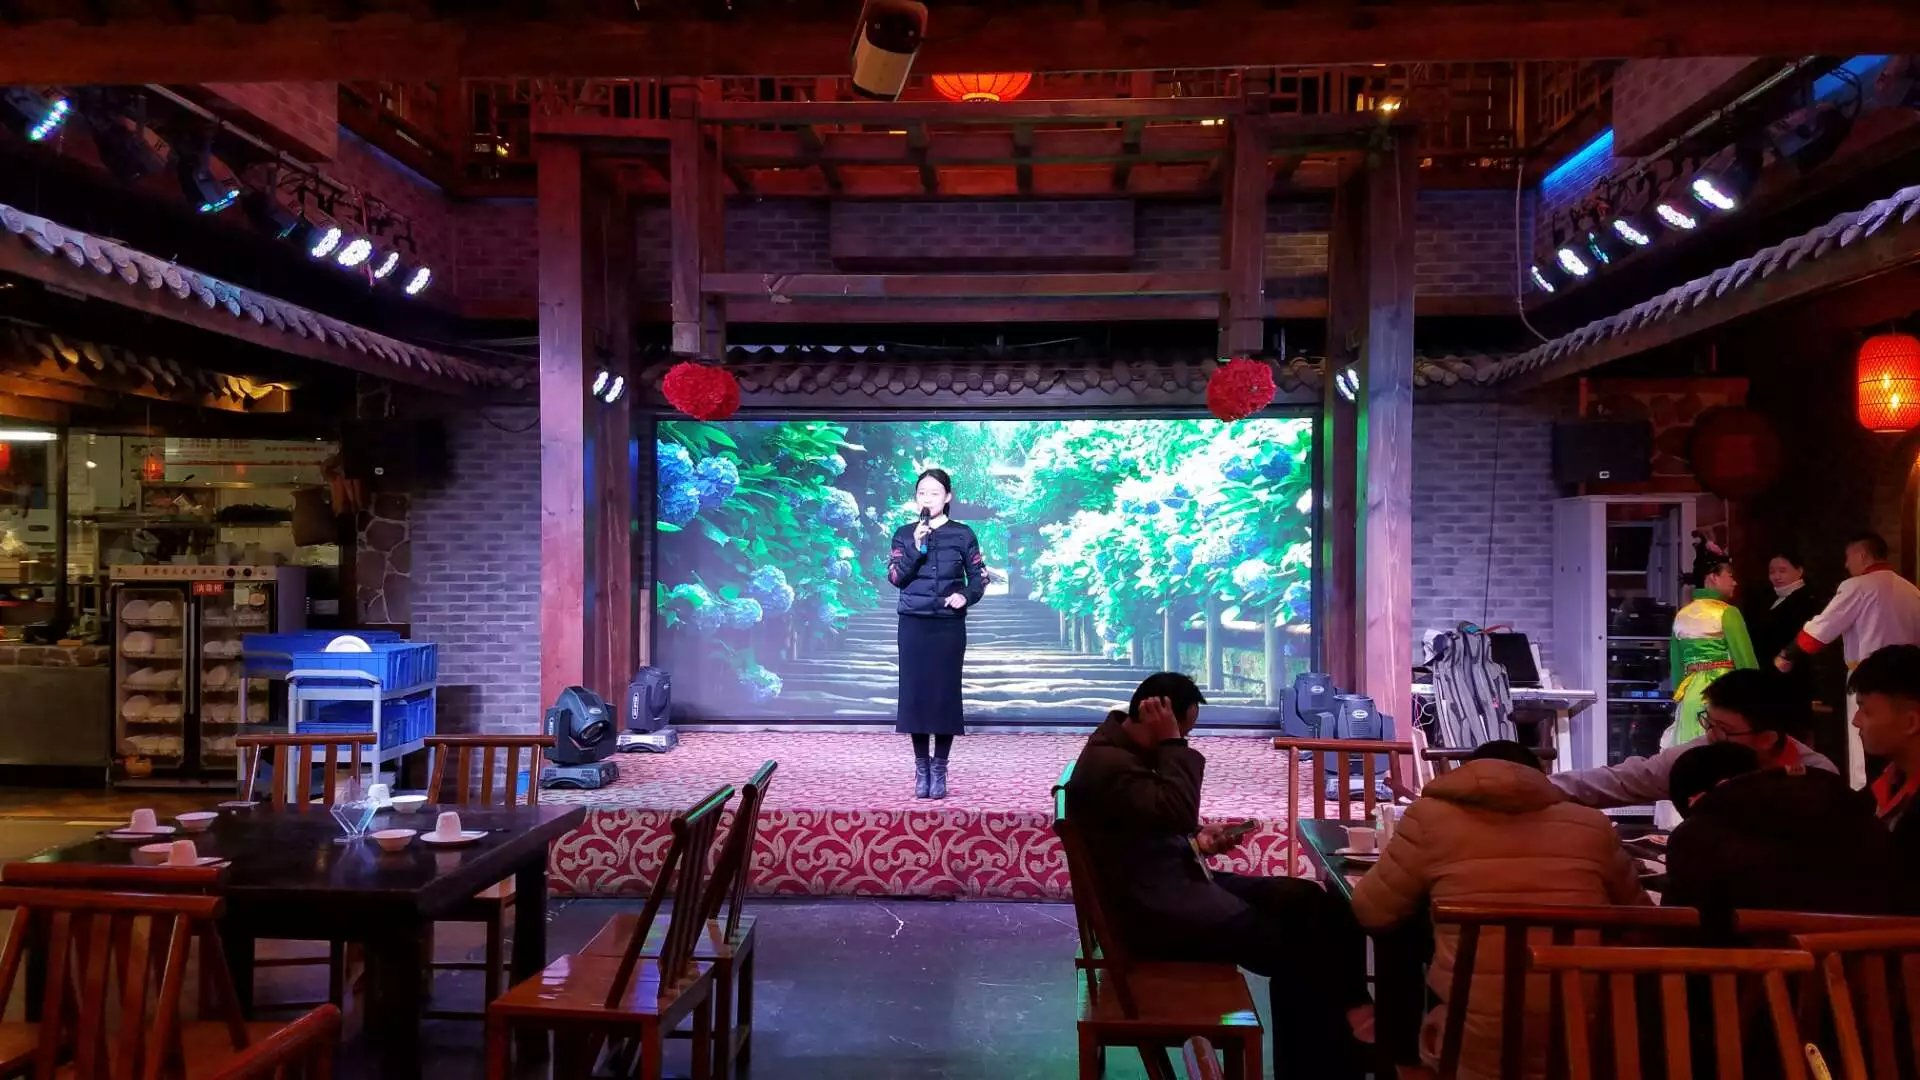 LED display solution for music bar